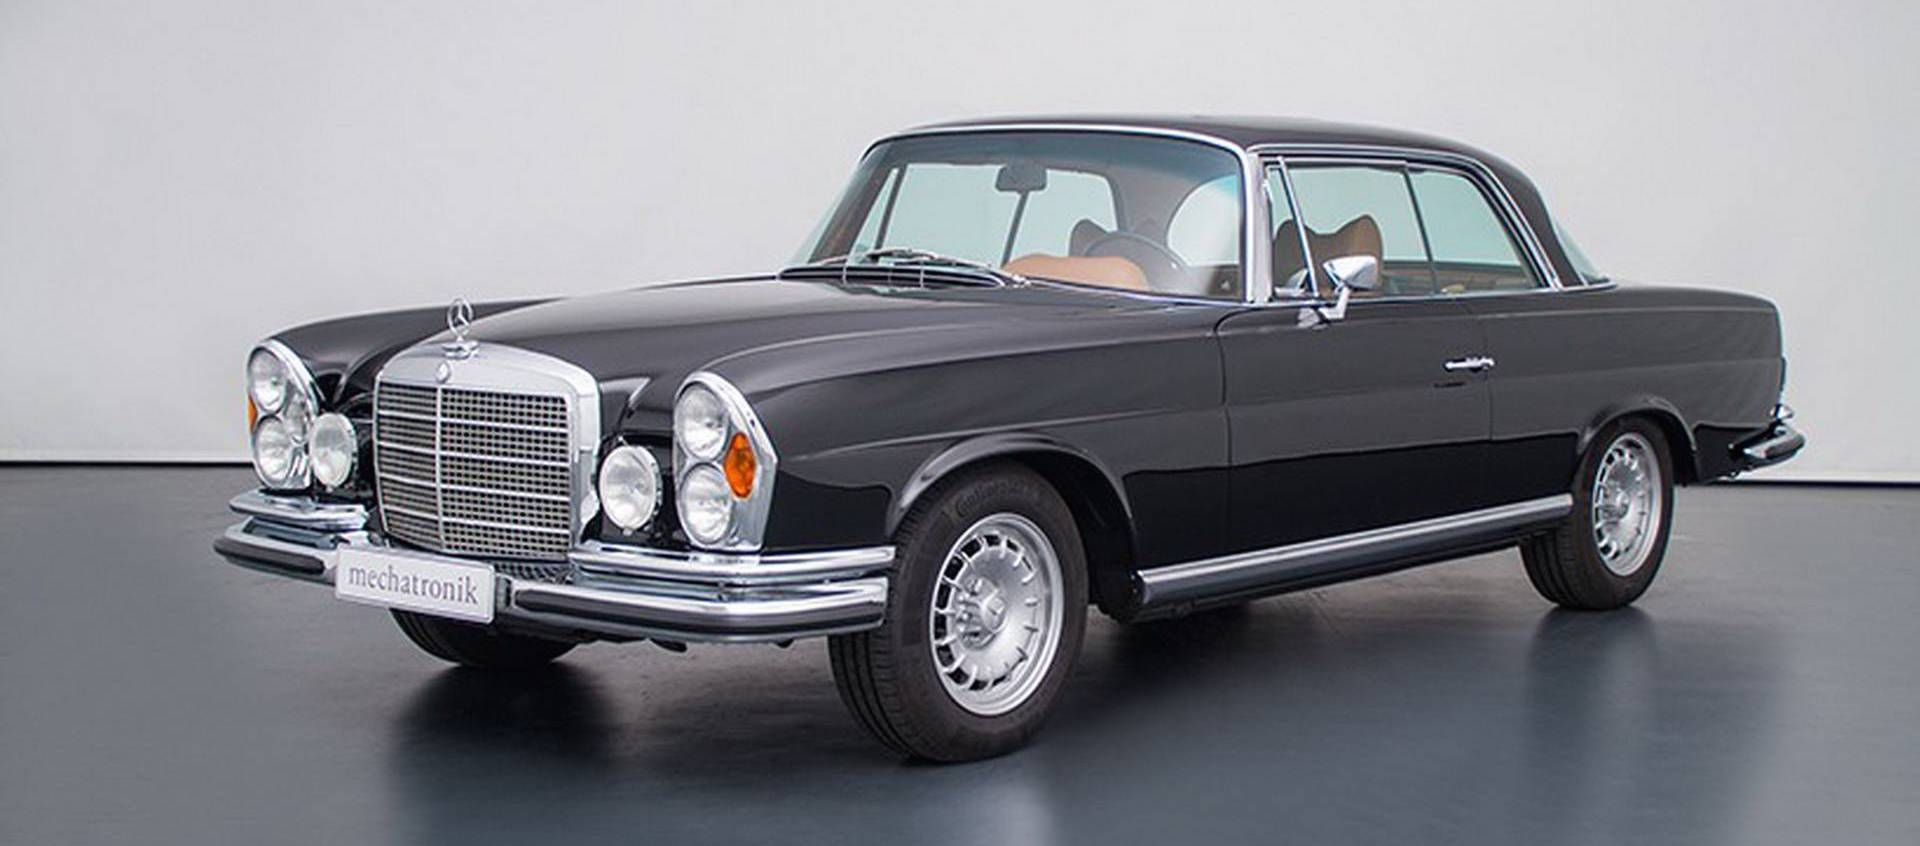 Mercedes W111 With An AMG V8 Could Be Yours For $465,000